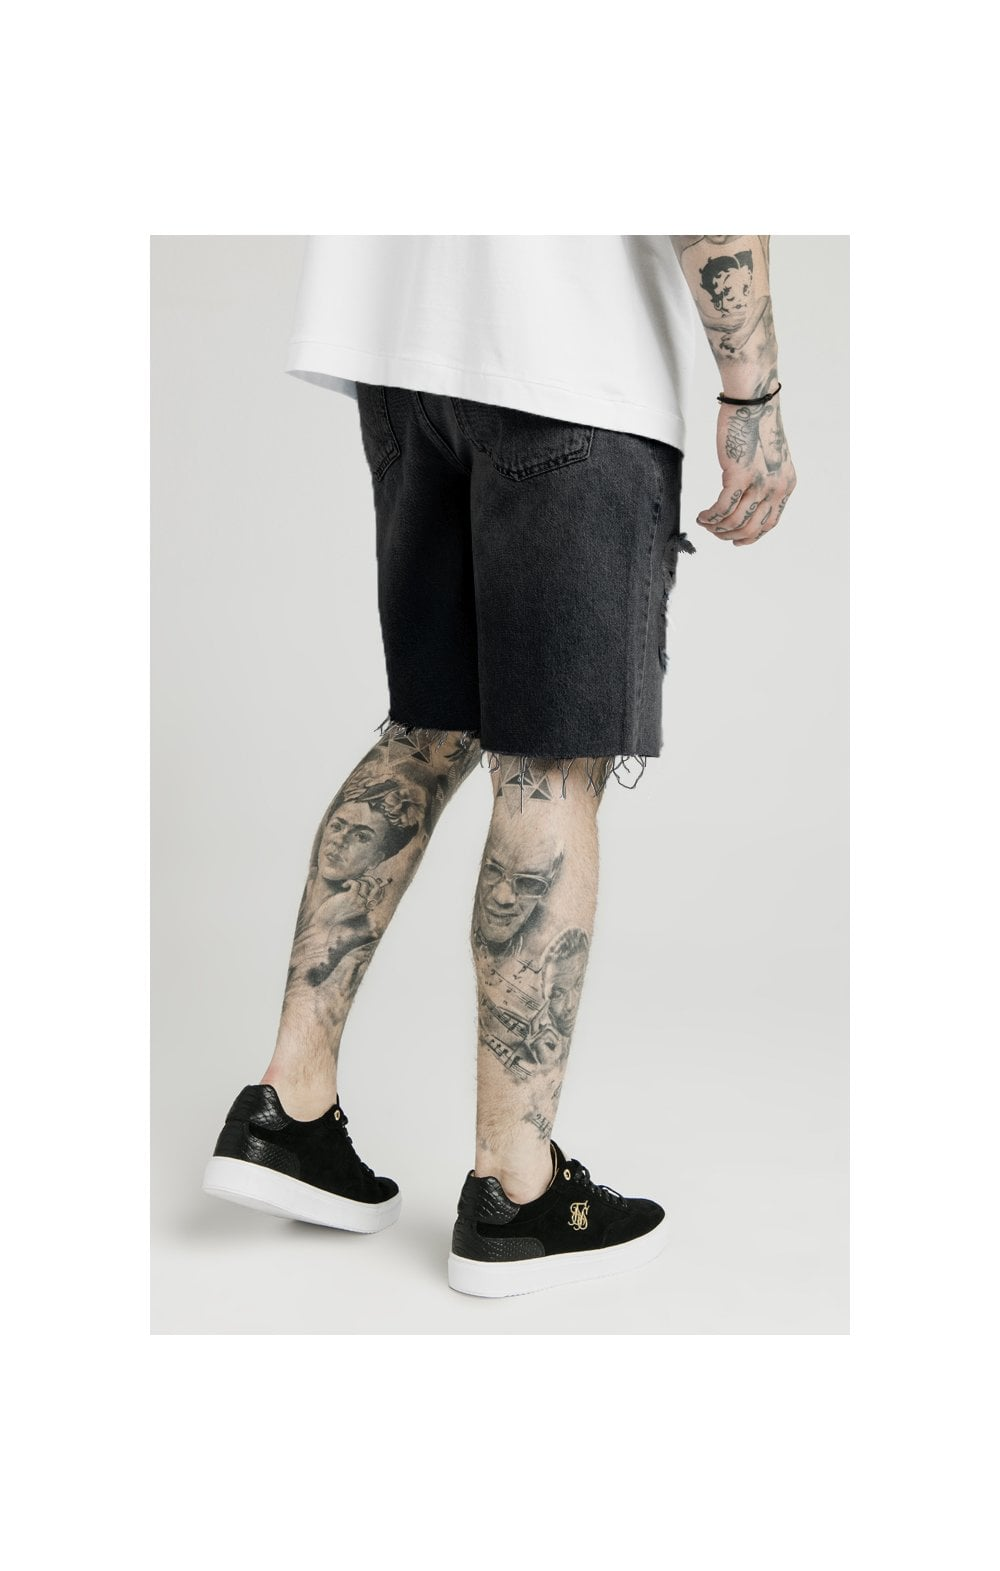 SikSilk x Dani Alves Loose Fit Denim Shorts - Black (2)